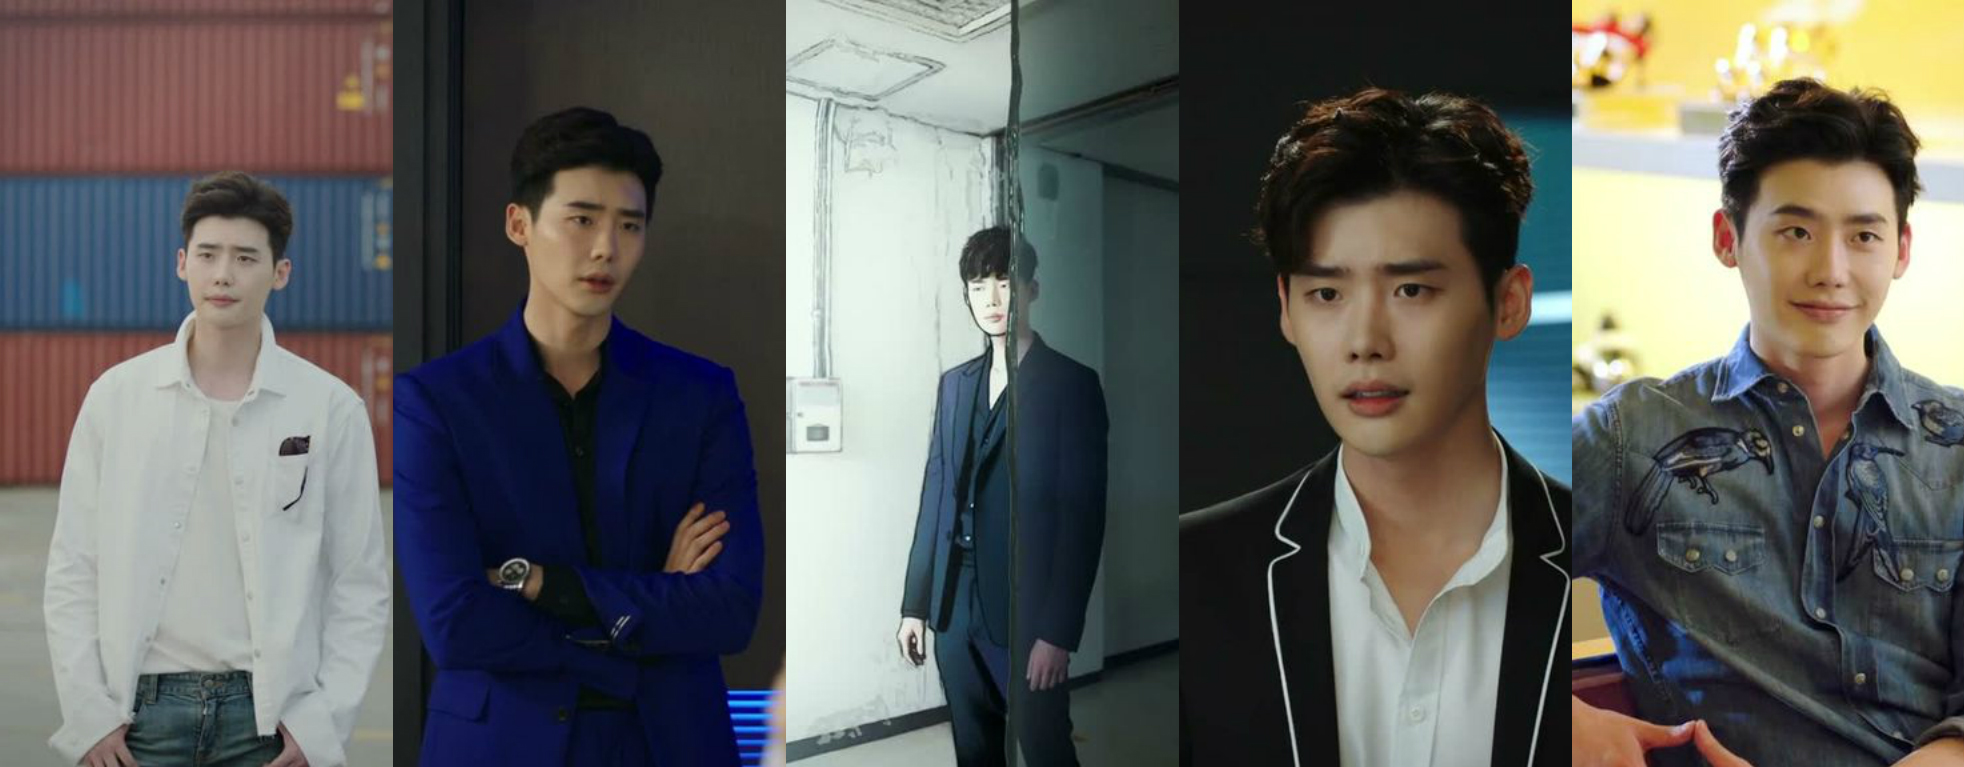 Kang Chul Fashion